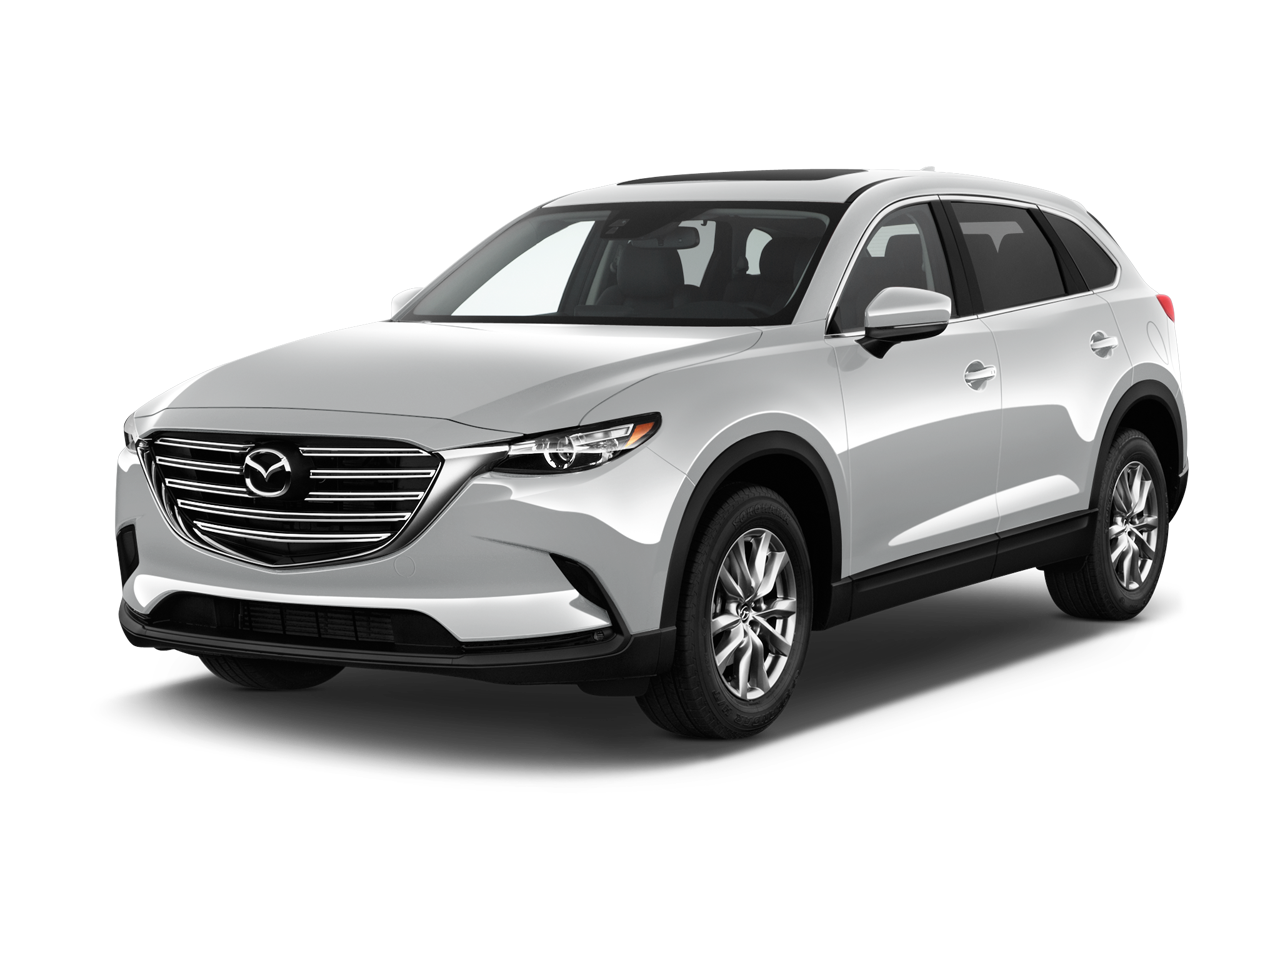 new 2016 mazda cx 9 touring near webster tx mazda of clear lake. Black Bedroom Furniture Sets. Home Design Ideas